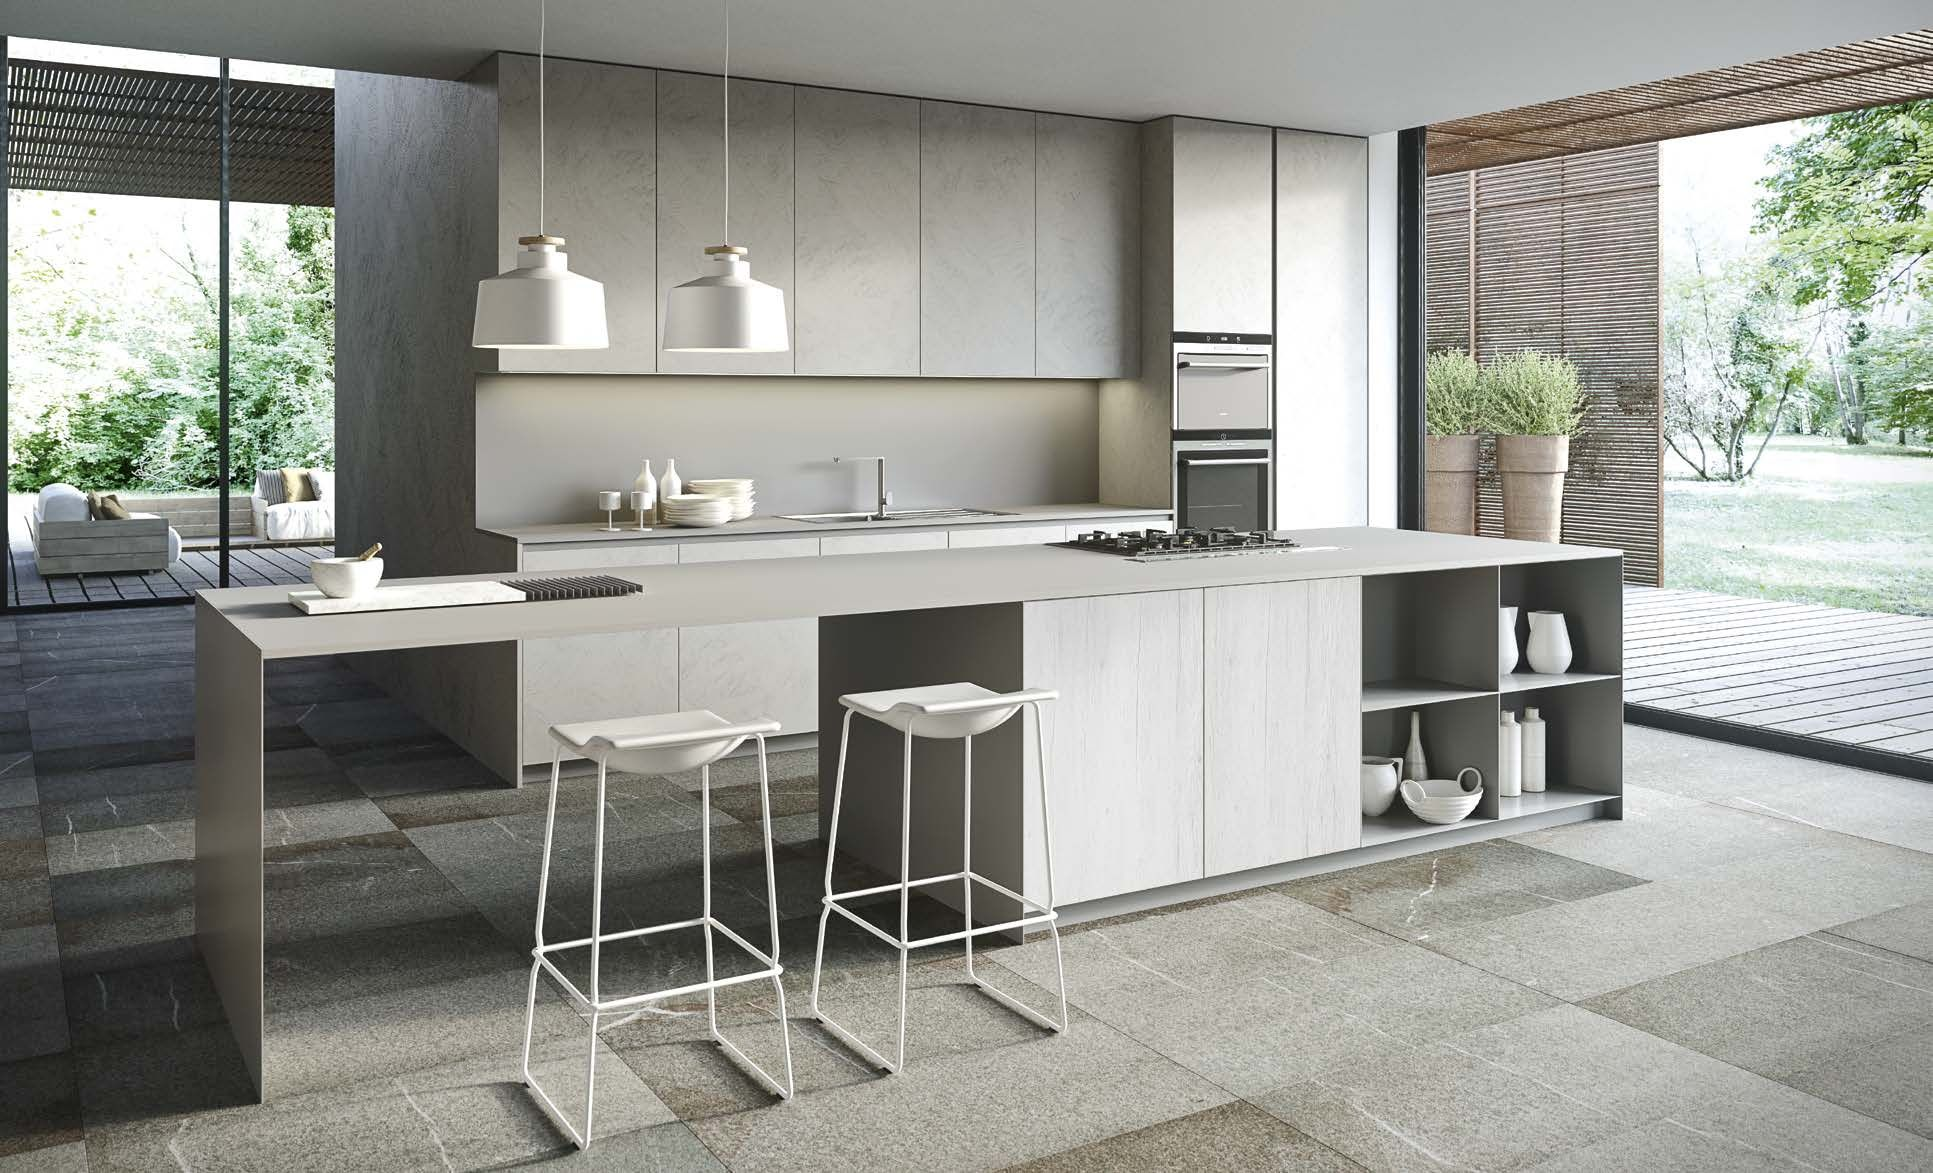 The Cut Kitchen - view of the whole #kitchen. #design ...